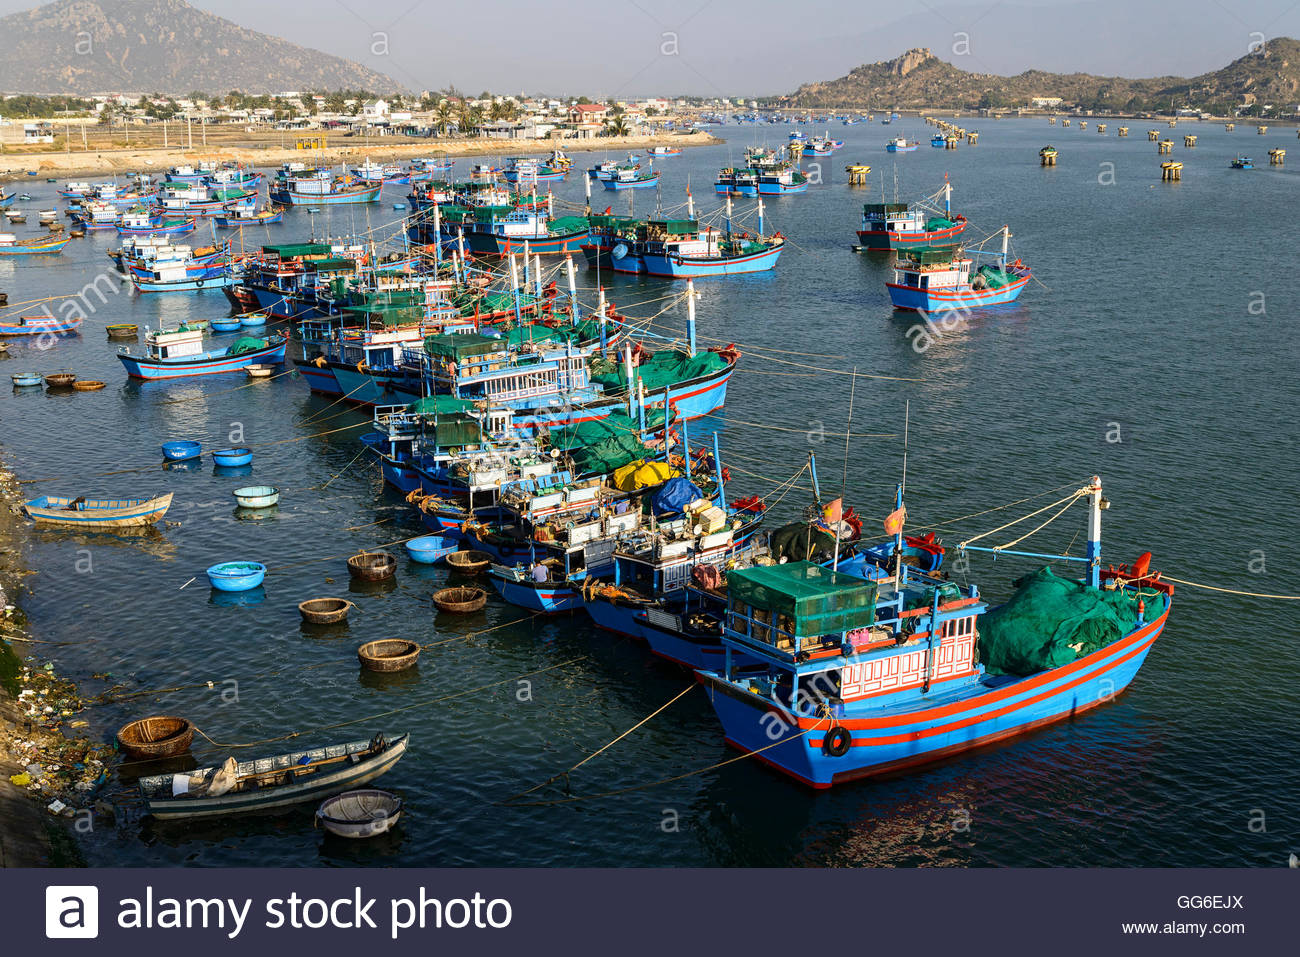 The fishing port, Phan Rang, Ninh Thuan province, Vietnam, Indochina, Southeast Asia, Asia - Stock Image